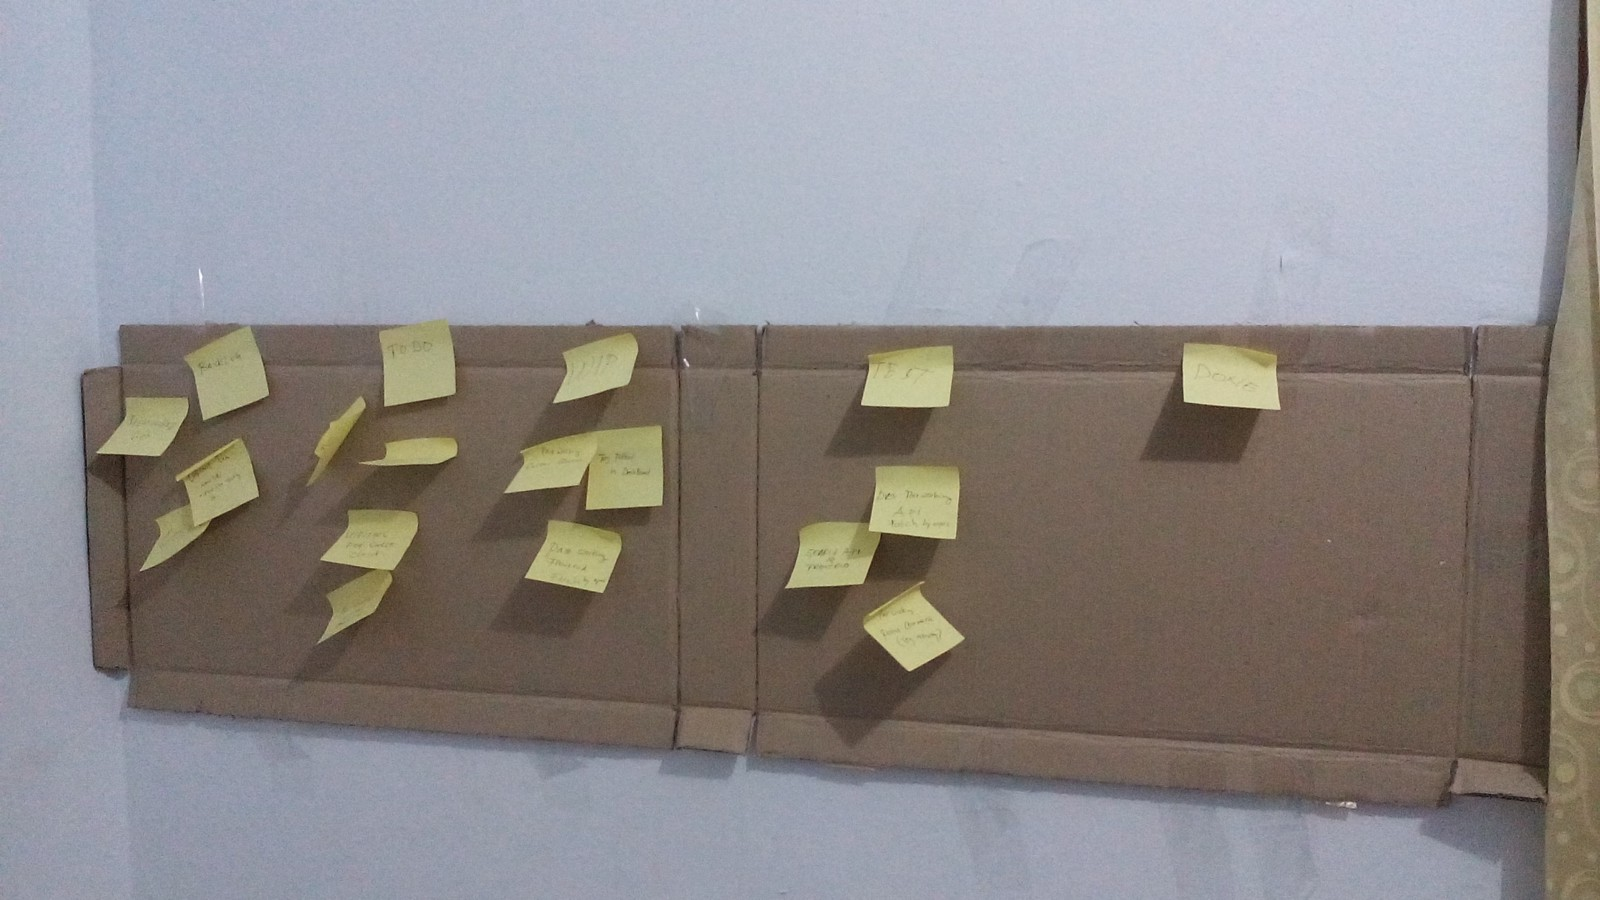 My mini and low budget Kanban Board.